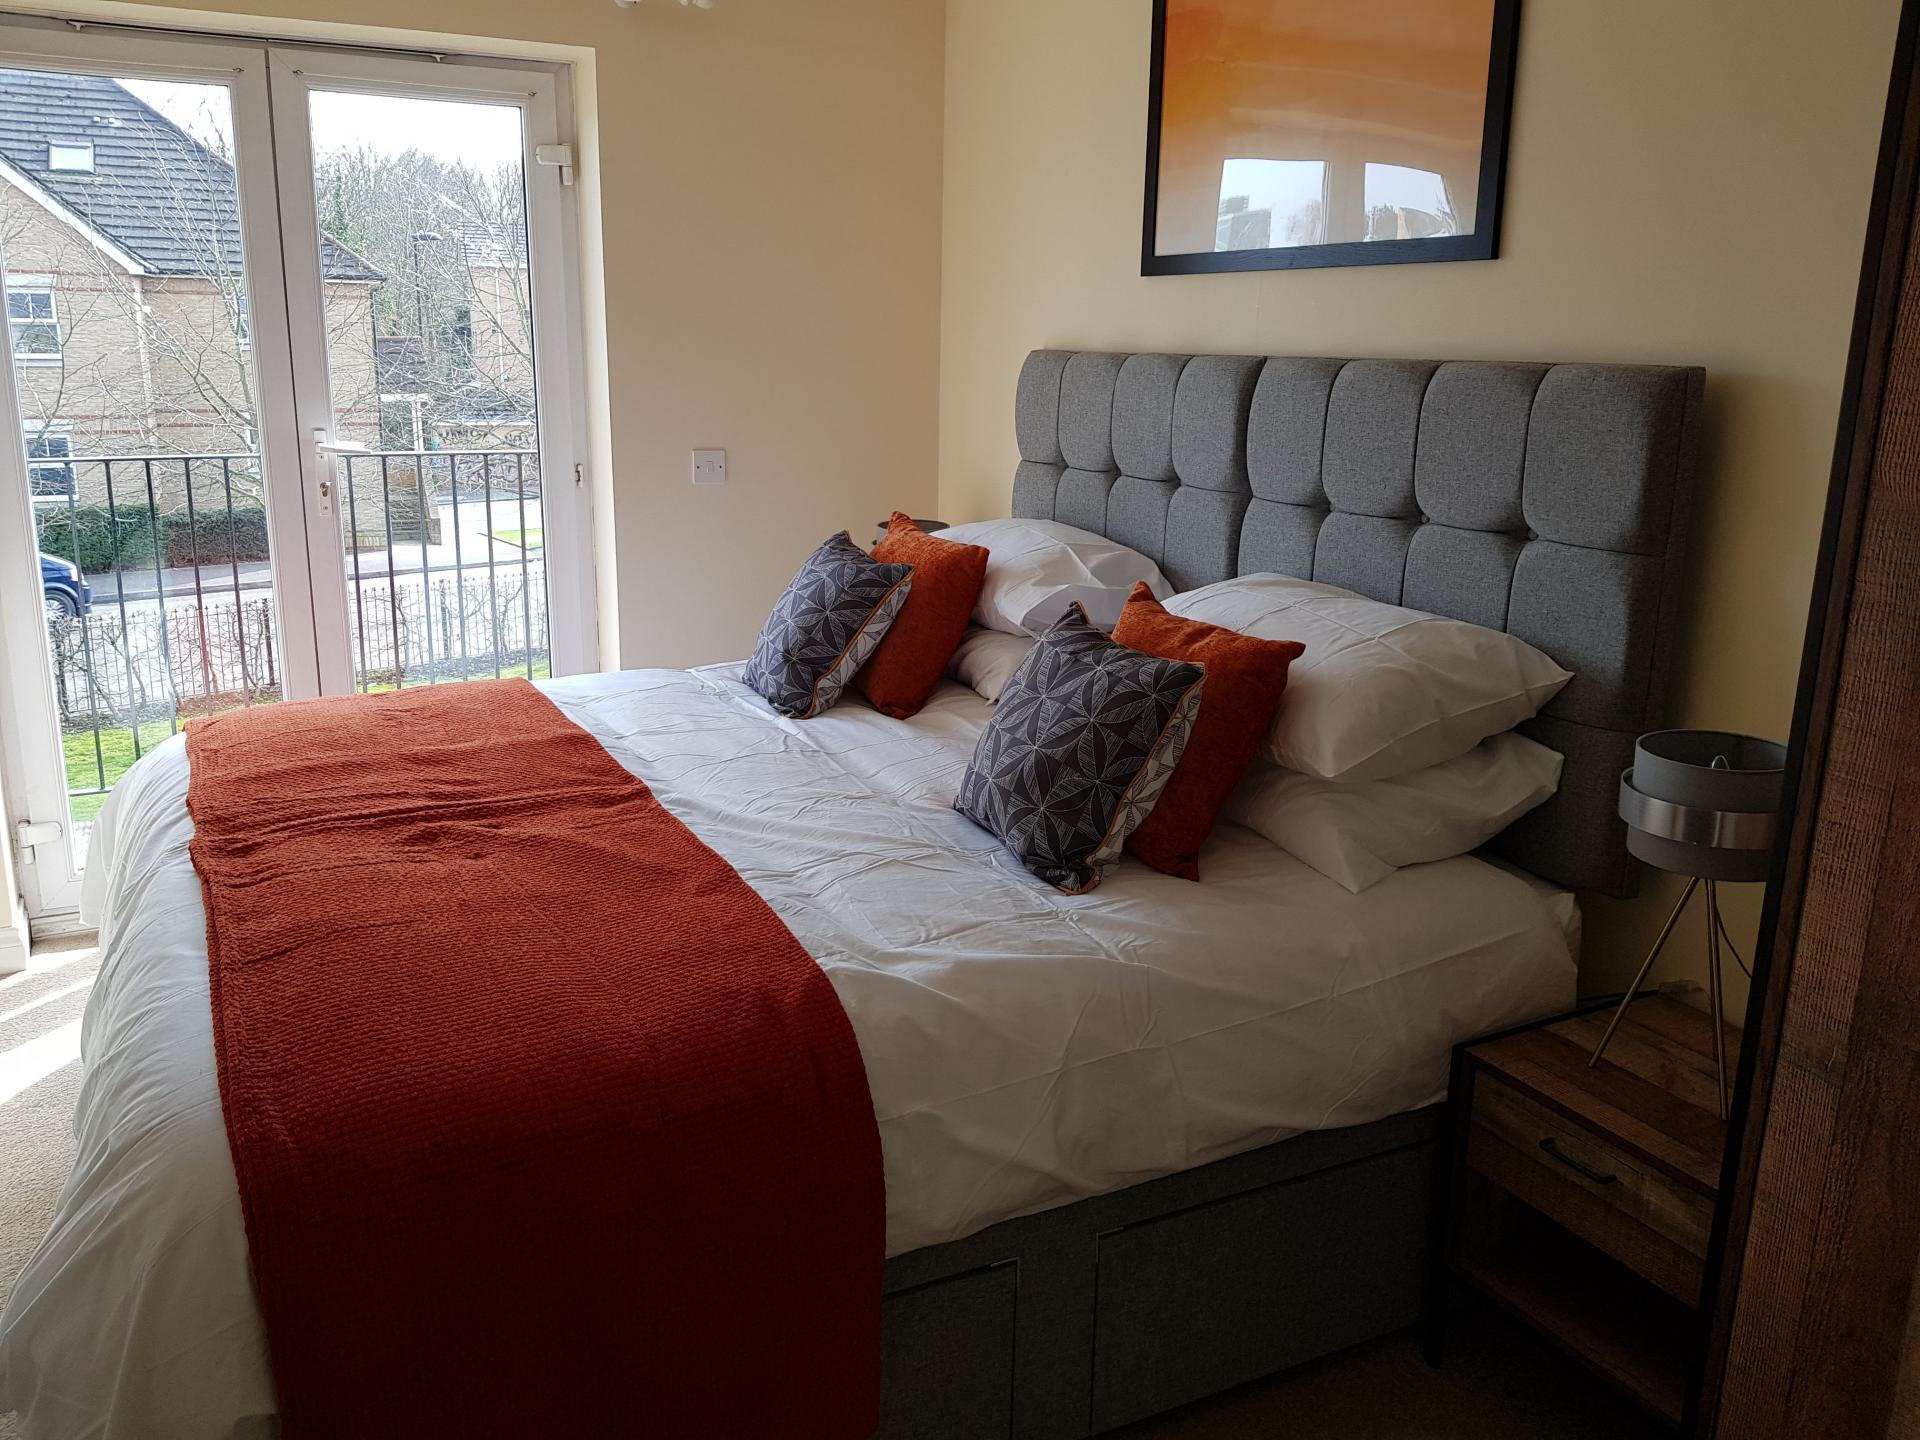 Bedroom at Le Tissier Court Apartment, The Polygon, Southampton - Citybase Apartments